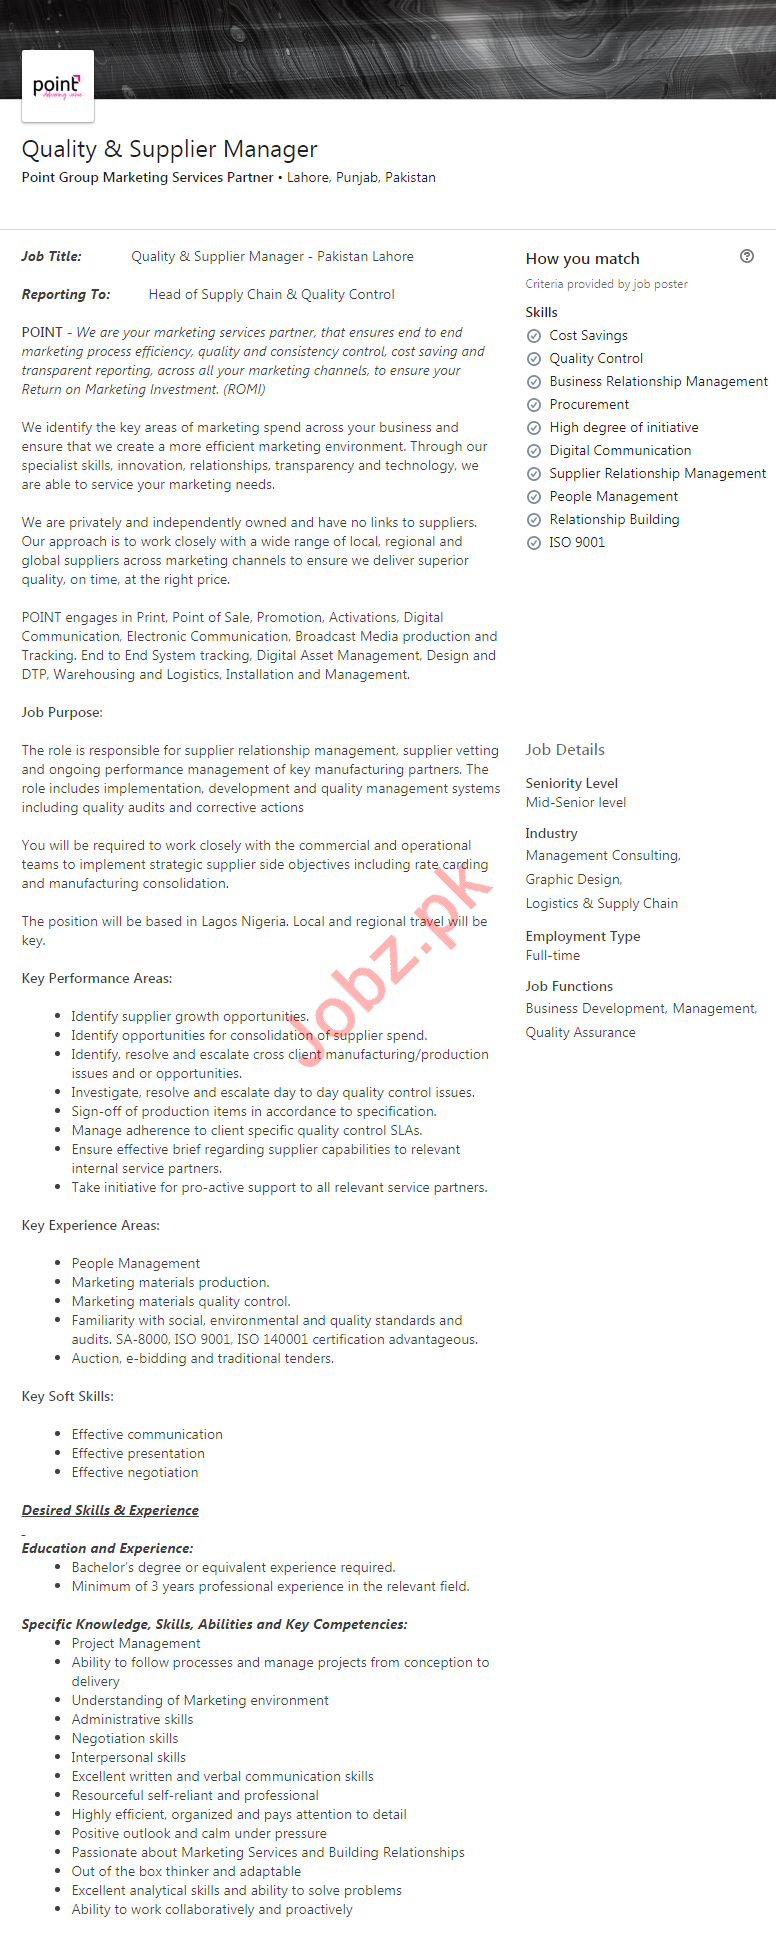 Quality & Supplier Manager Jobs 2020 in Lahore